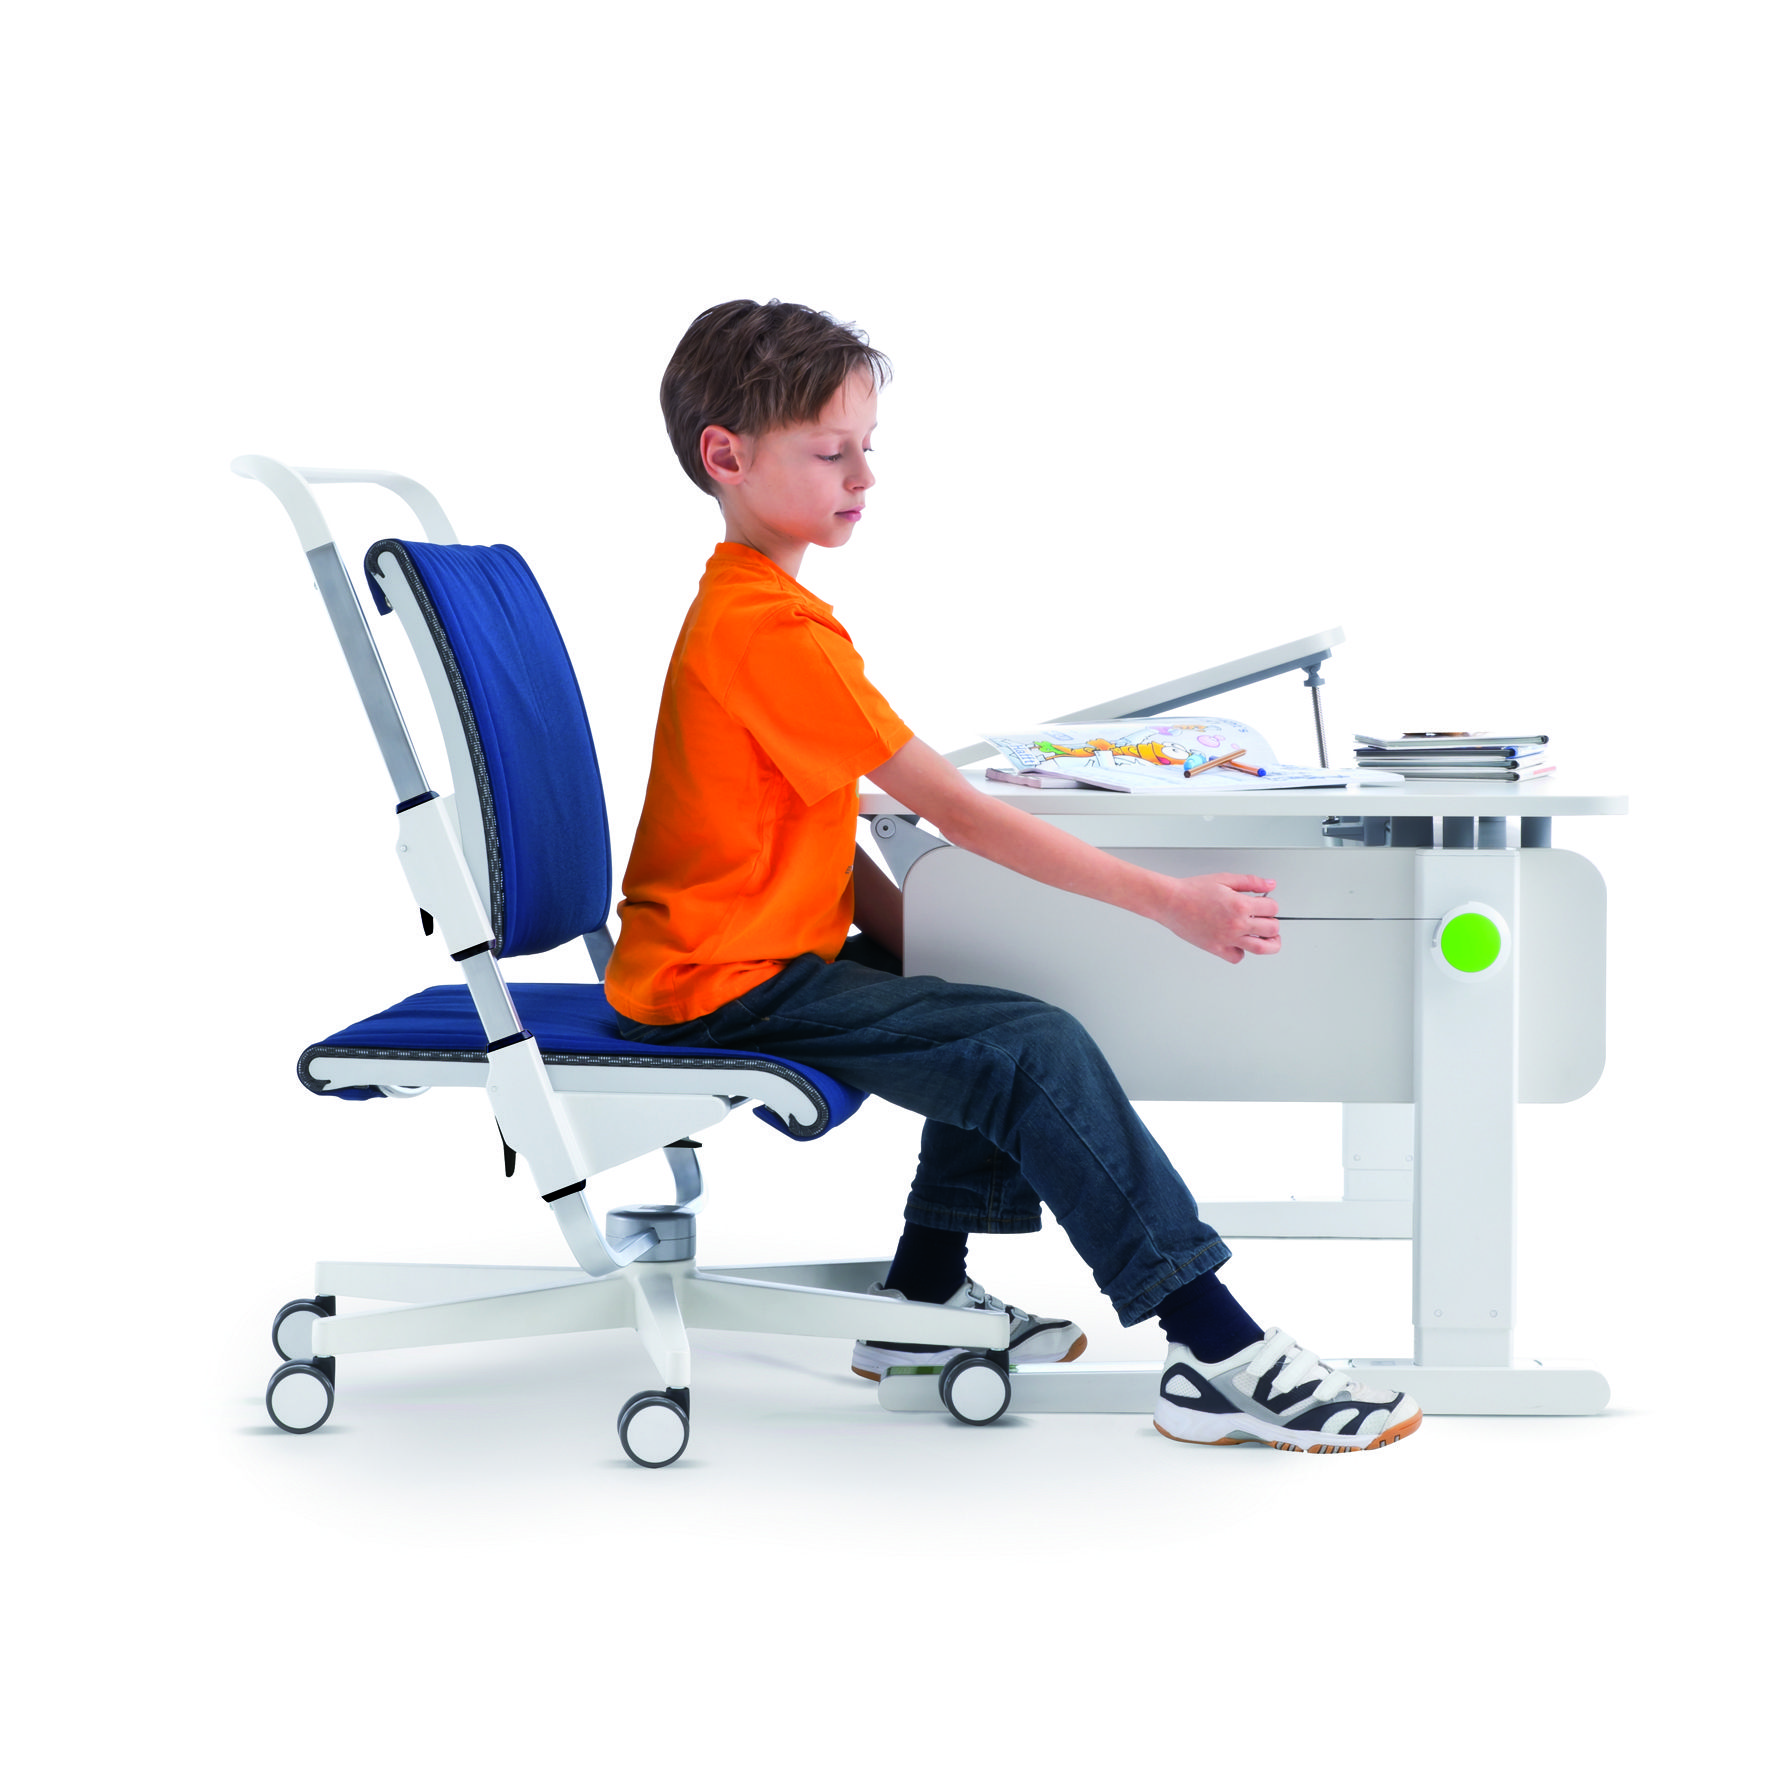 Champion desk by Moll and Scooter Chair. Adjusting the